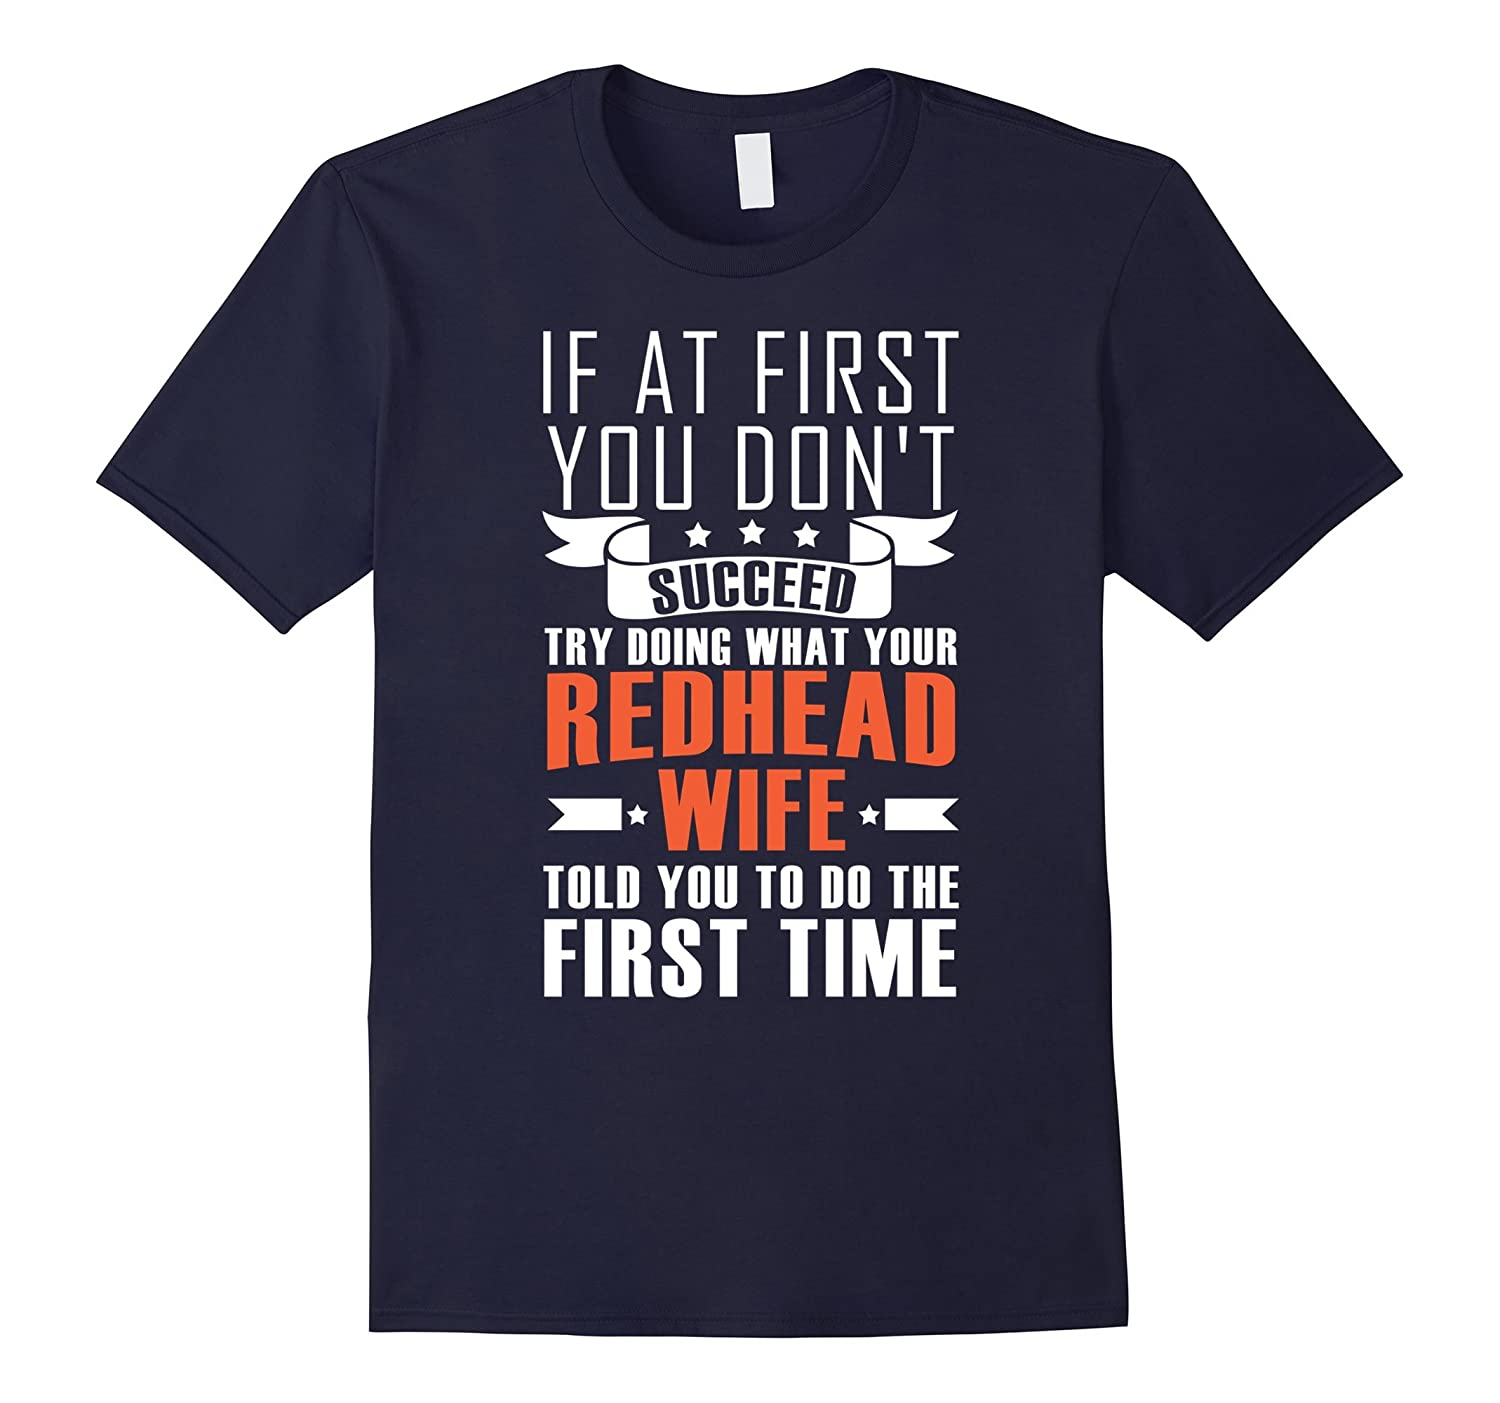 Your Redhead Wife Told You To Do The First Time T-Shirt-Rose